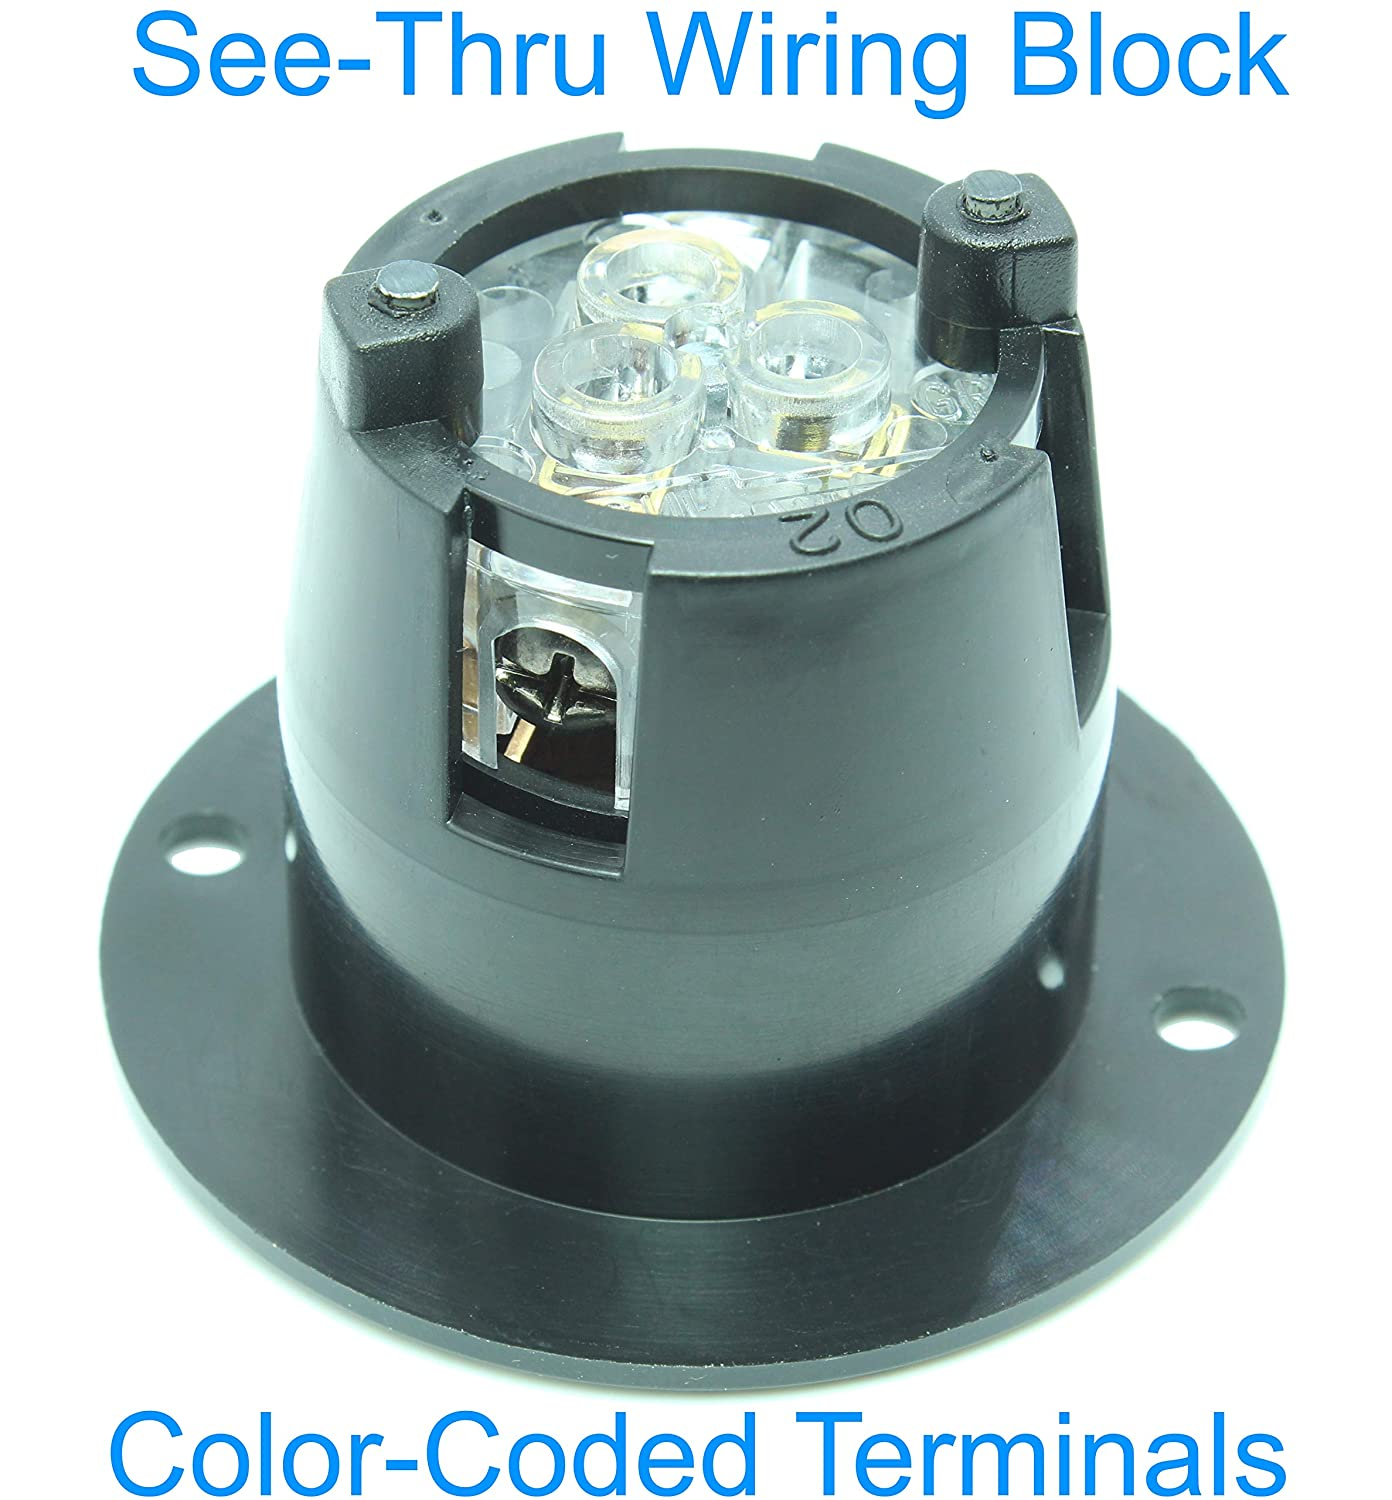 Journeyman Pro 5278 15 Amp 120 125 Volt Nema 5 Wiring The Main Power Male Receptacle Greenground Whitecommon Flanged Inlet Black Commercial Grade 2 Pole 3 Wire Straight Blade Plug Charger